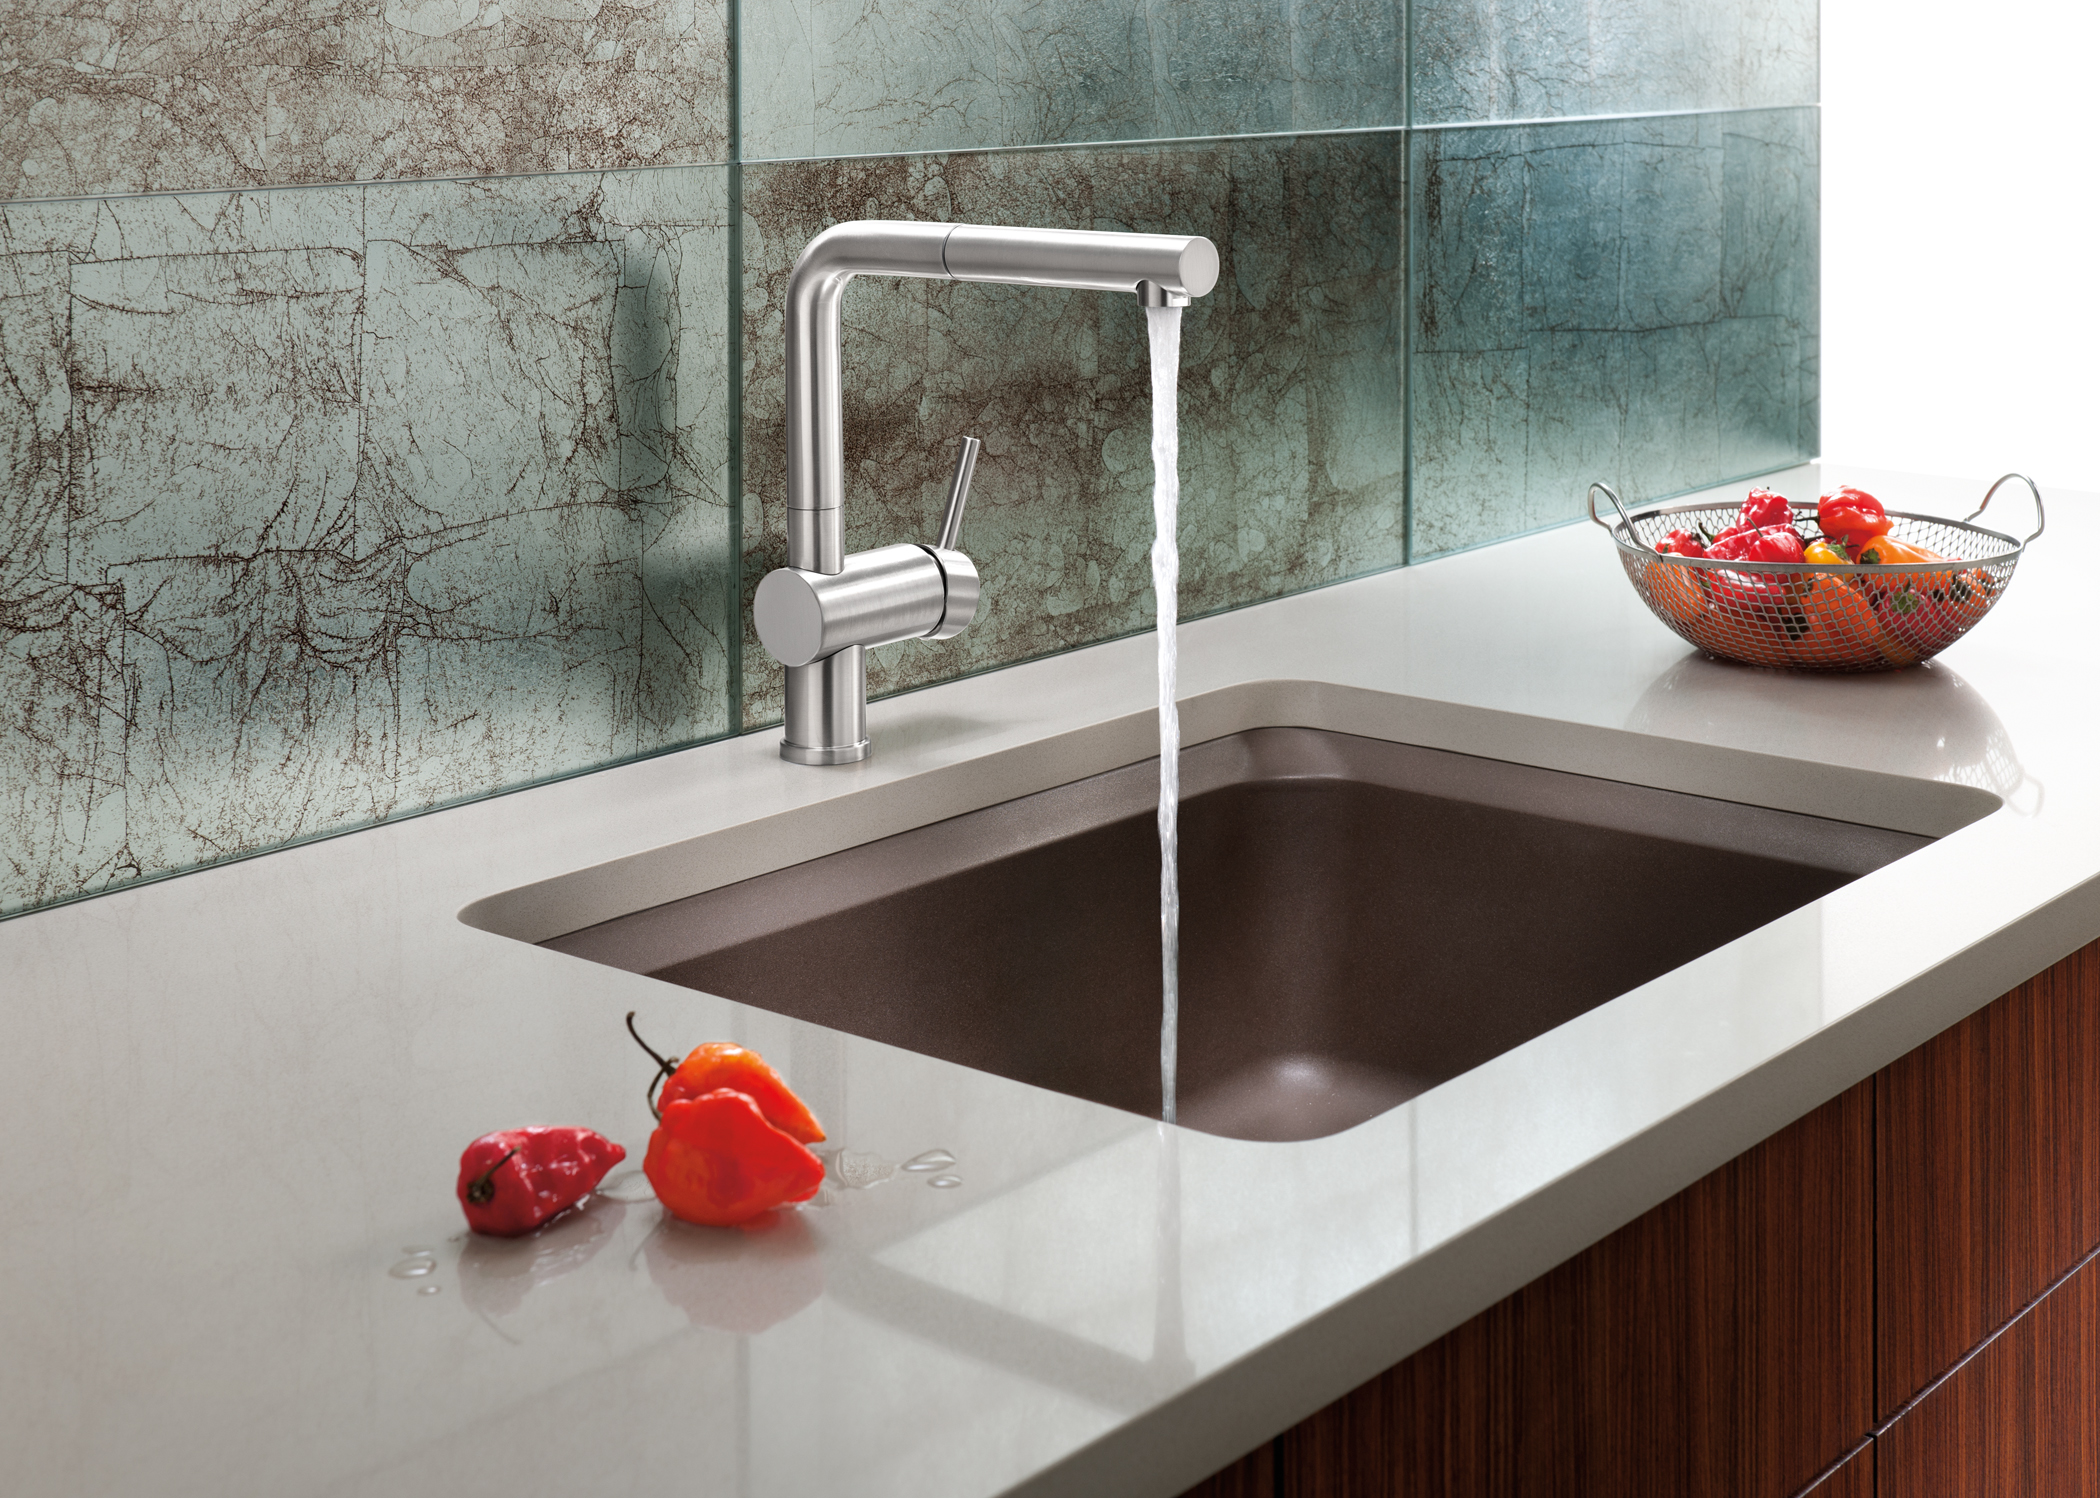 The new blanco silgranit ii vision designer kitchen sink for Contemporary kitchen sinks ideas